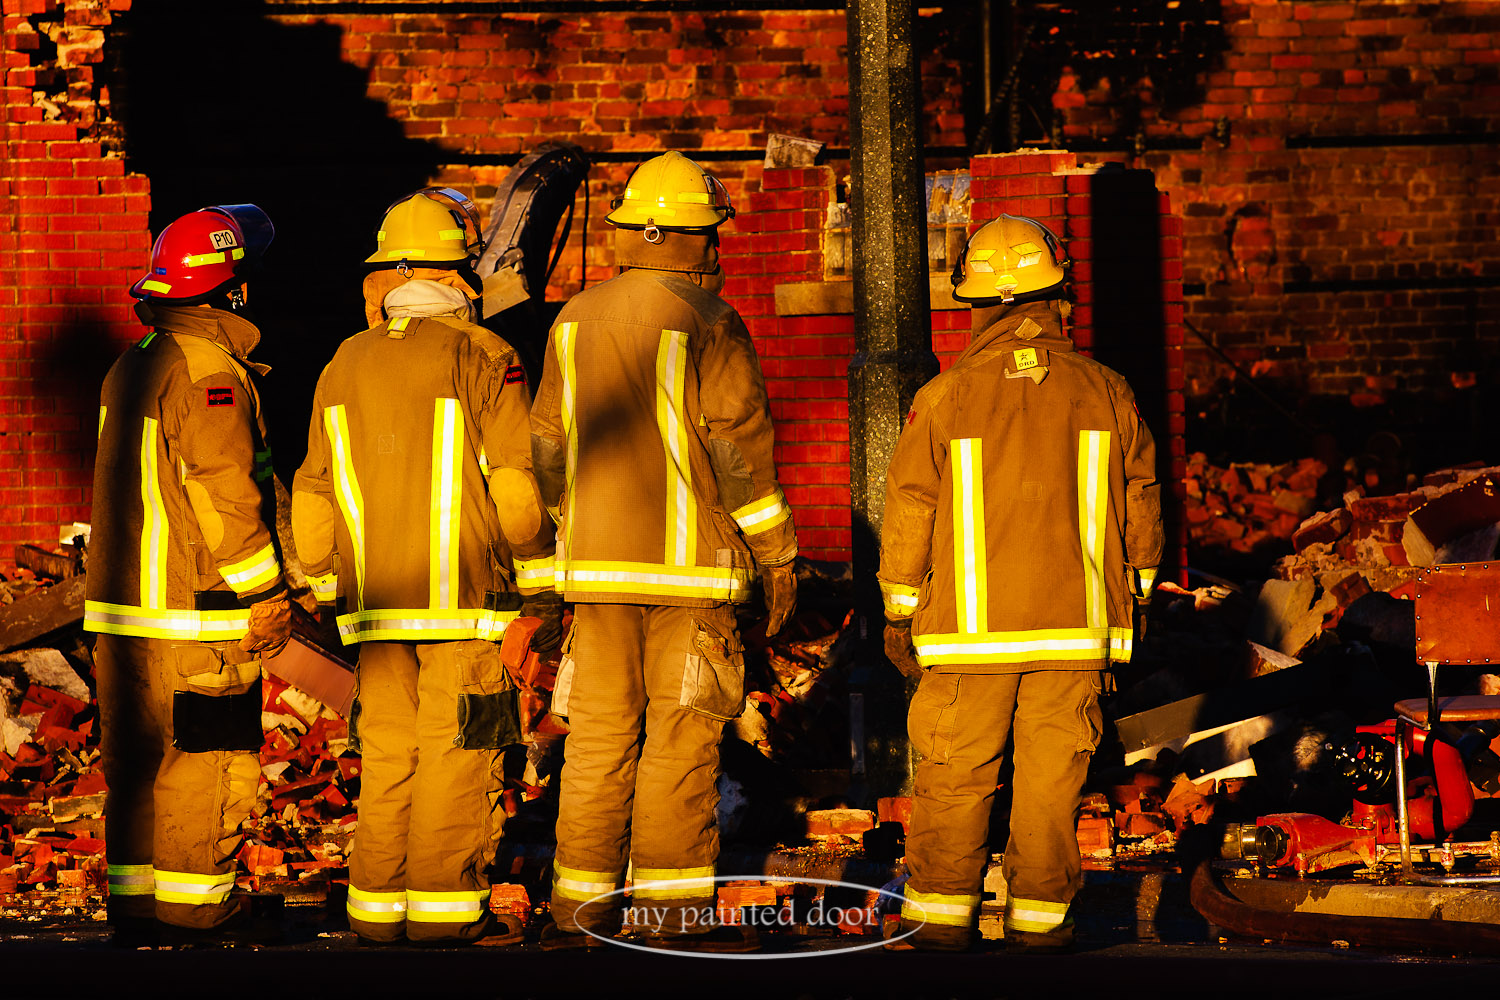 Thunder Bay firefighters view the aftermath of the West Hotel fire.